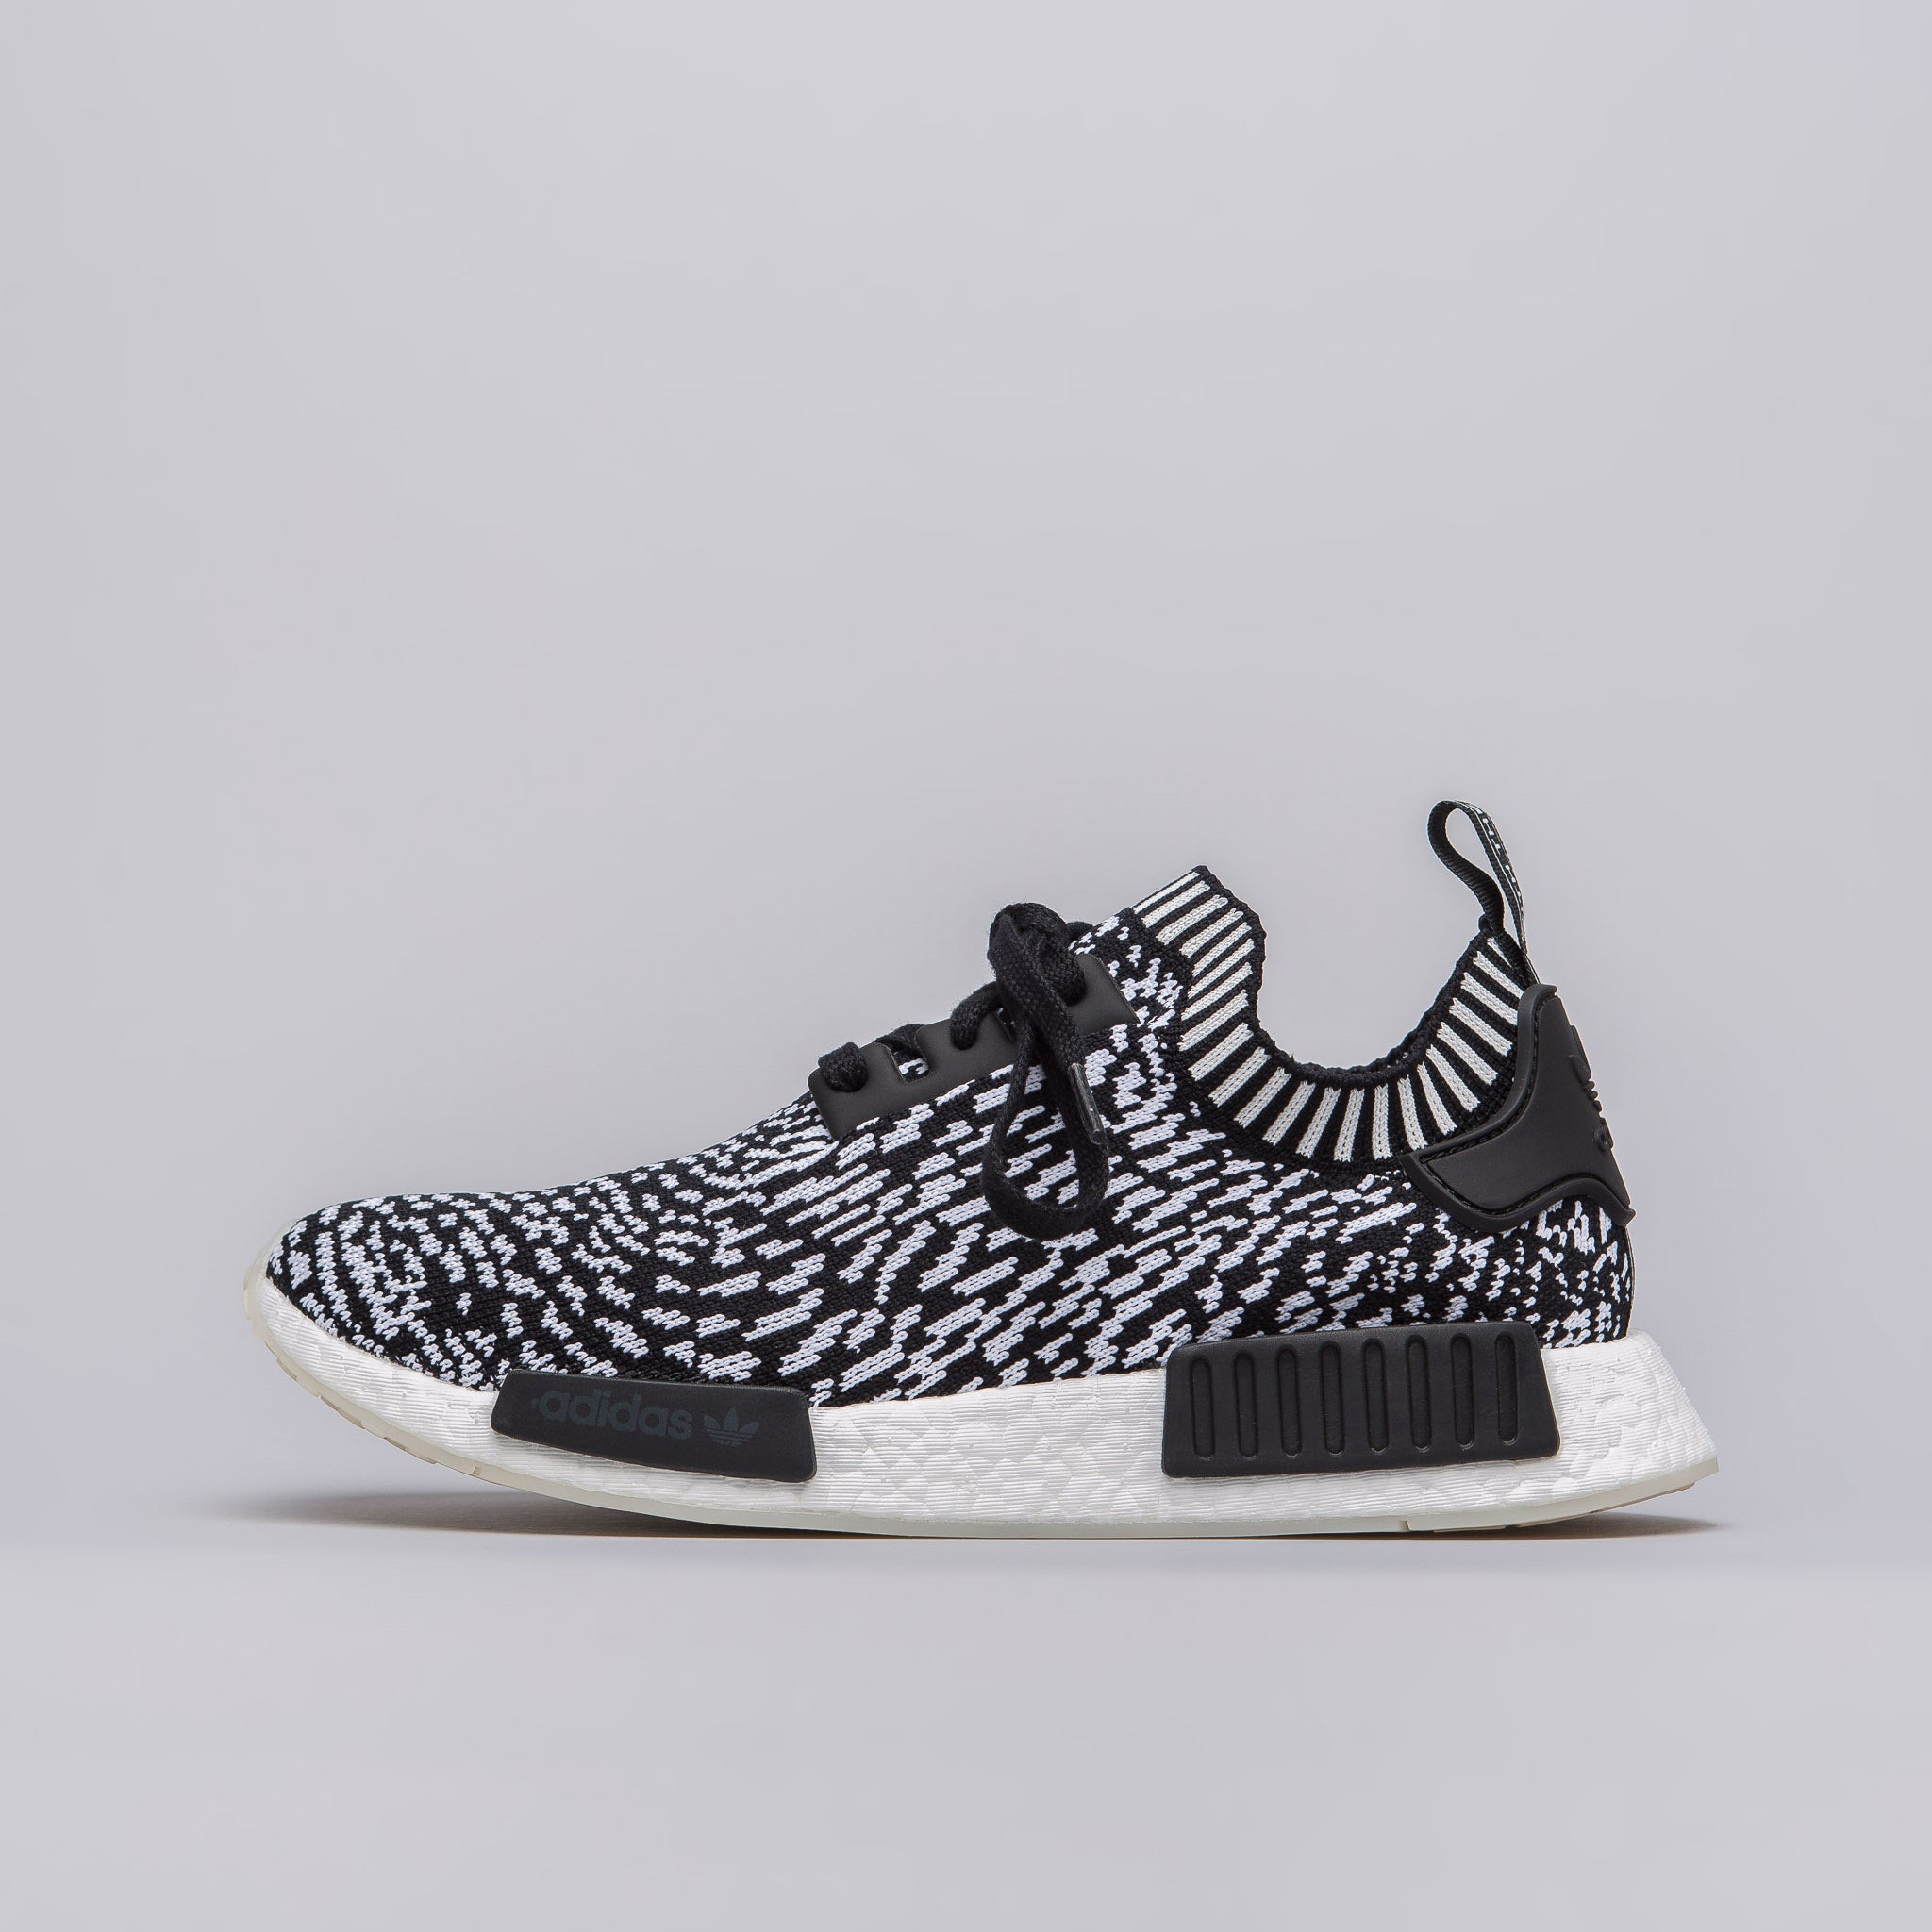 The adidas NMD R1 Primeknit Glitch Camo is back in a new White